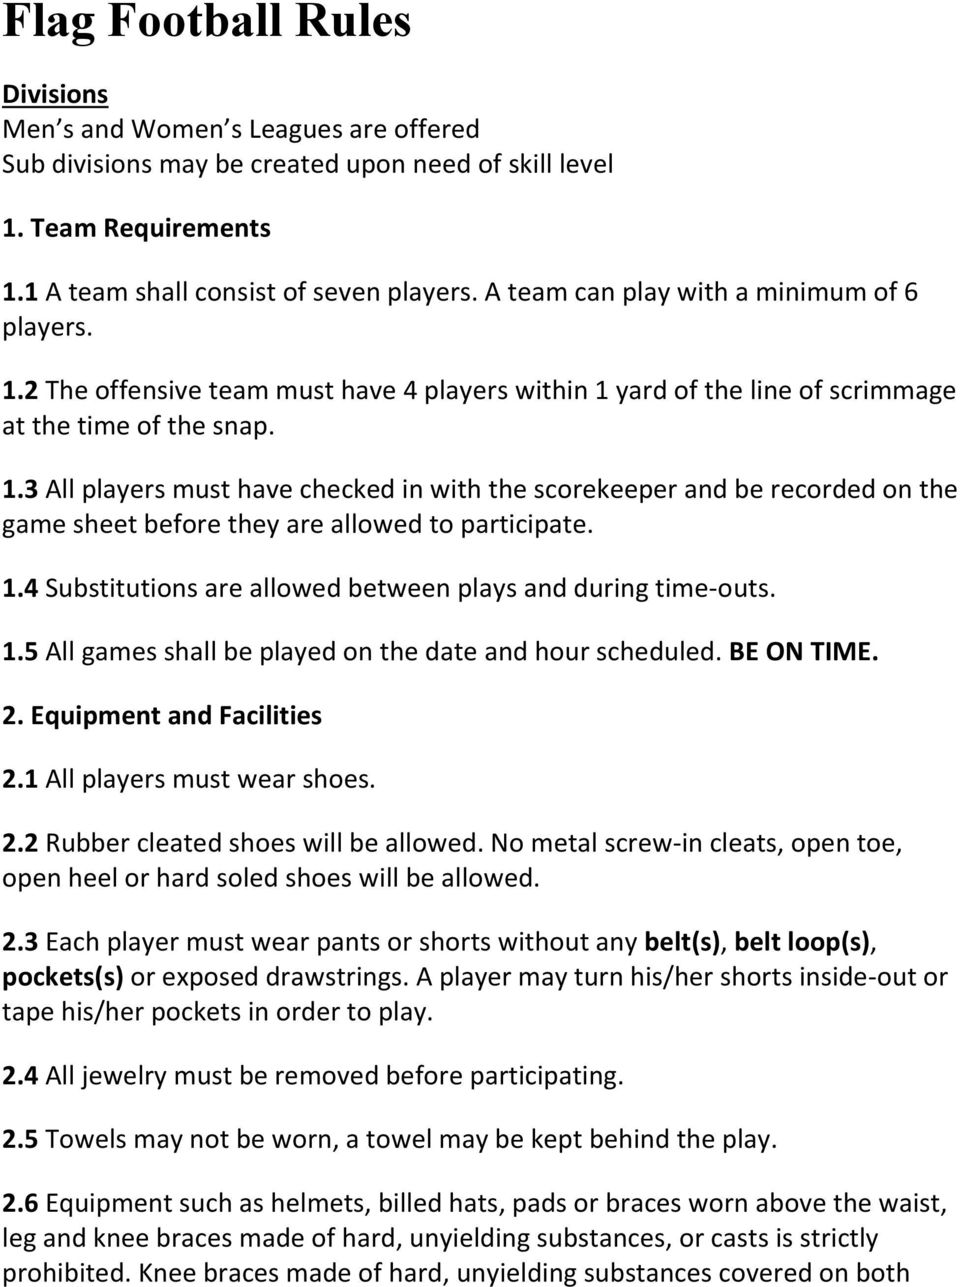 1.4 Substitutions are allowed between plays and during time-outs. 1.5 All games shall be played on the date and hour scheduled. BE ON TIME. 2. Equipment and Facilities 2.1 All players must wear shoes.